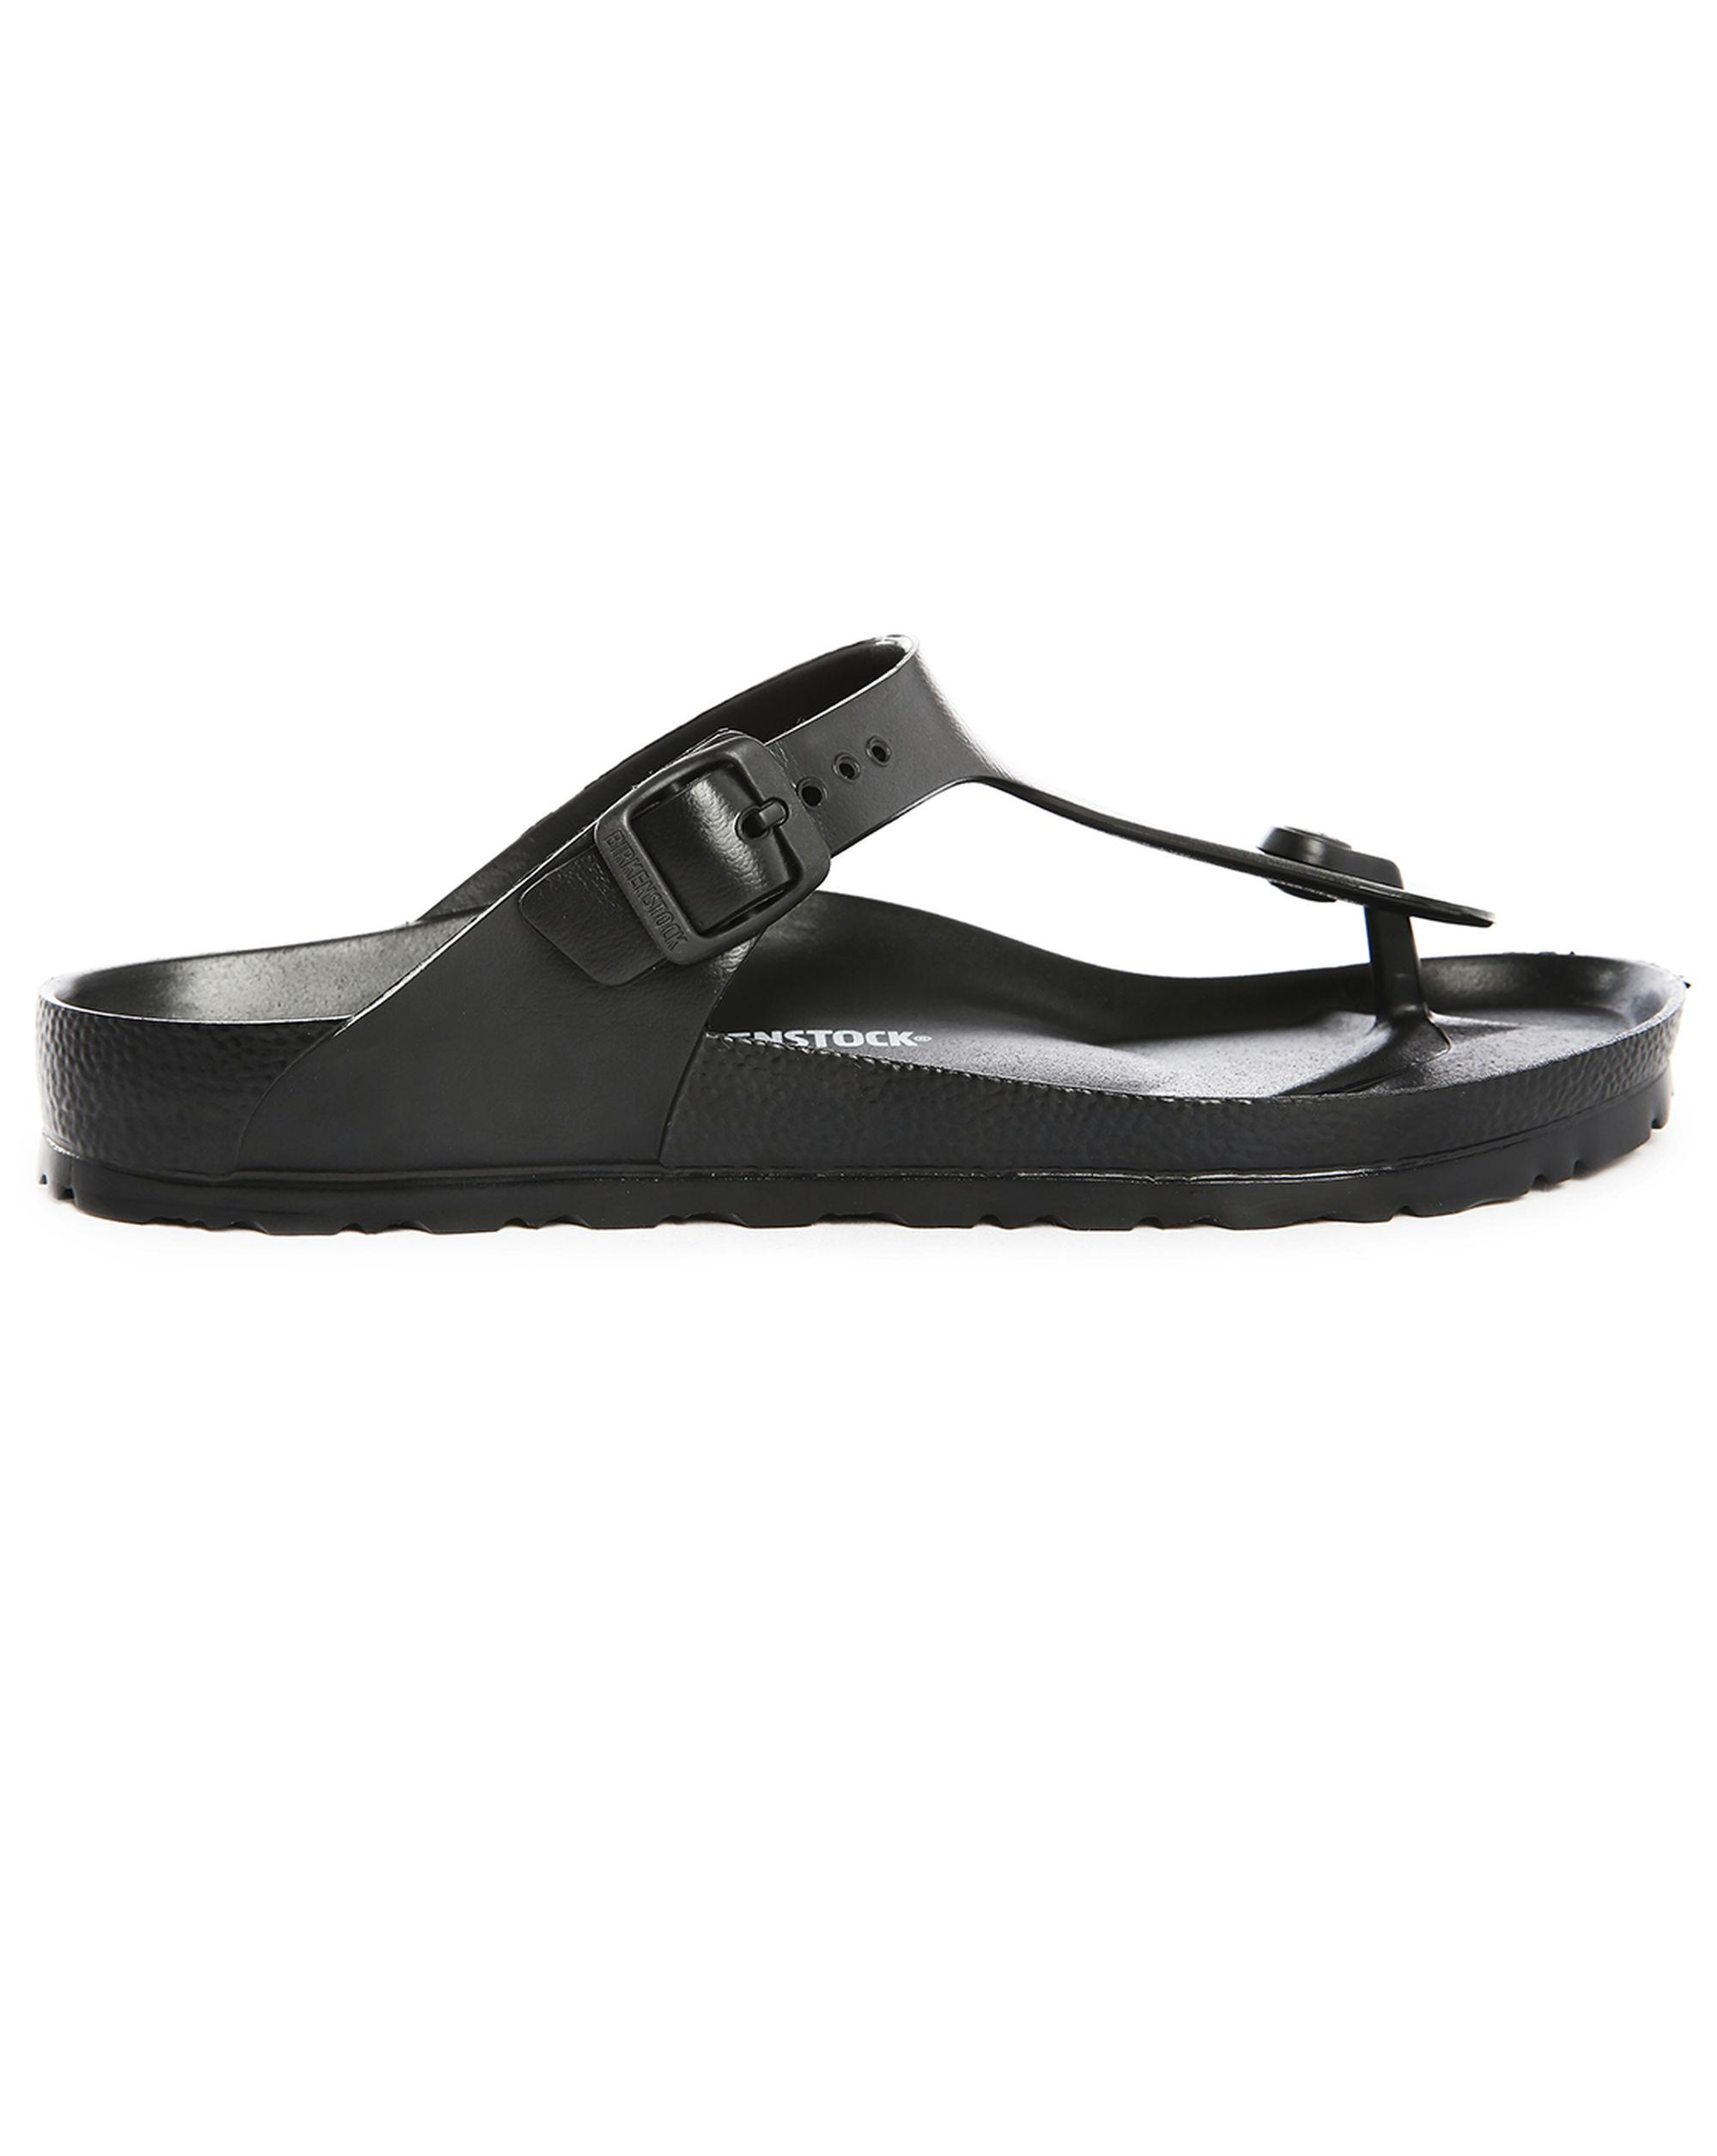 birkenstock black eva gizeh flip flops in black for men lyst. Black Bedroom Furniture Sets. Home Design Ideas